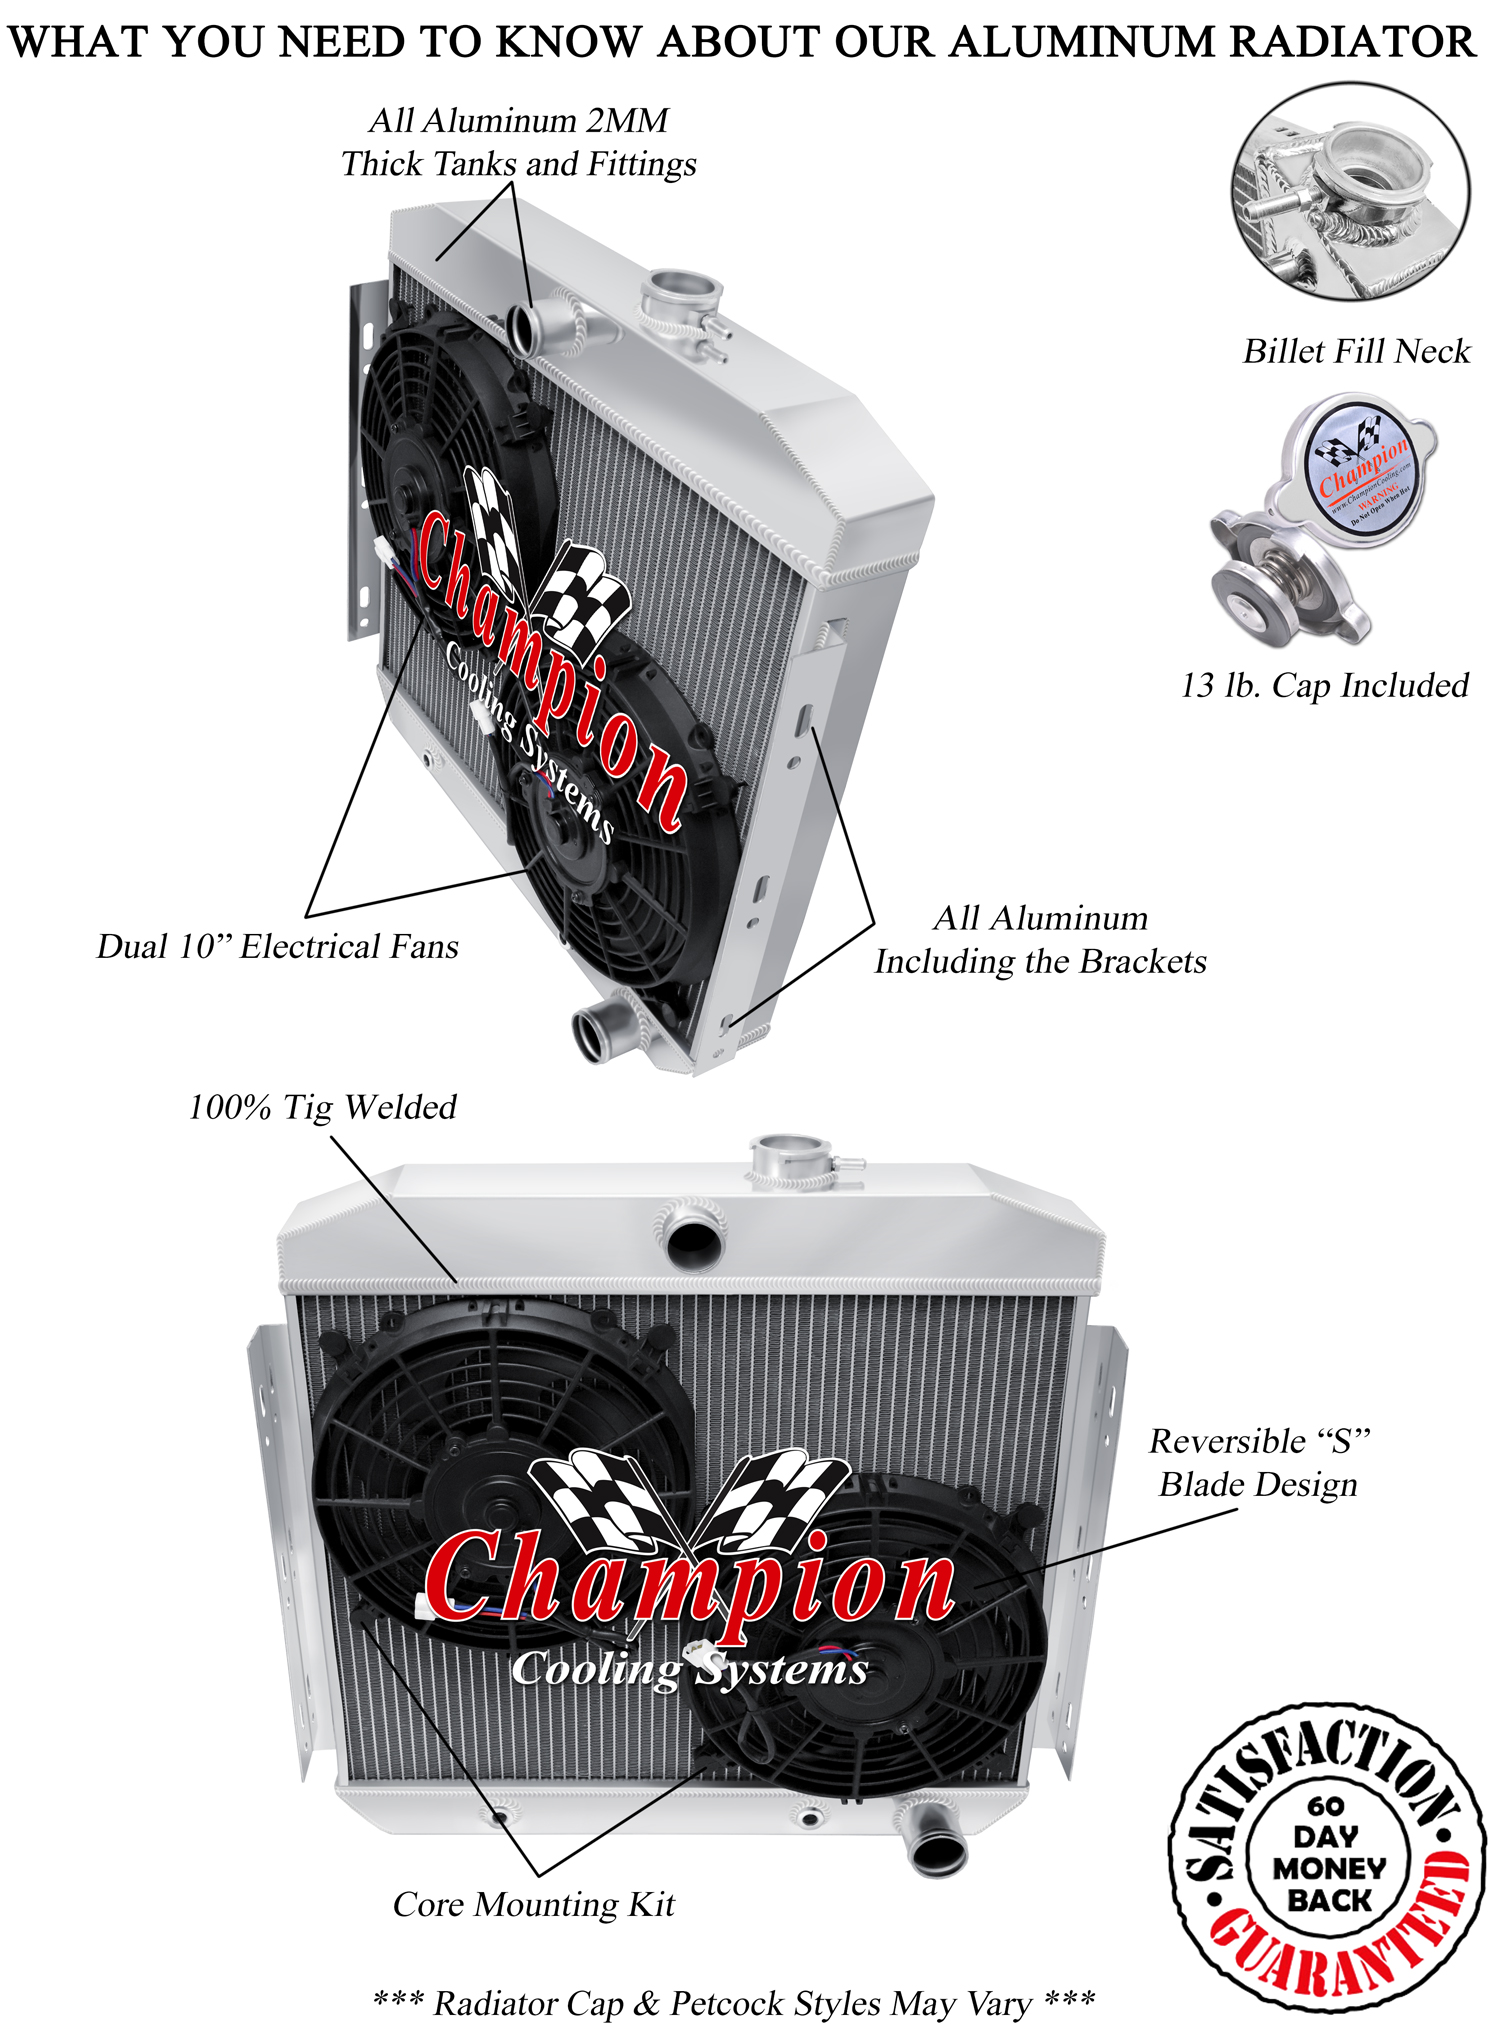 https://www.championcooling.com/photos/Photos%20White/With%20Fans/Combos/5056/5056_2x10_white_Diagram_Champion.jpg